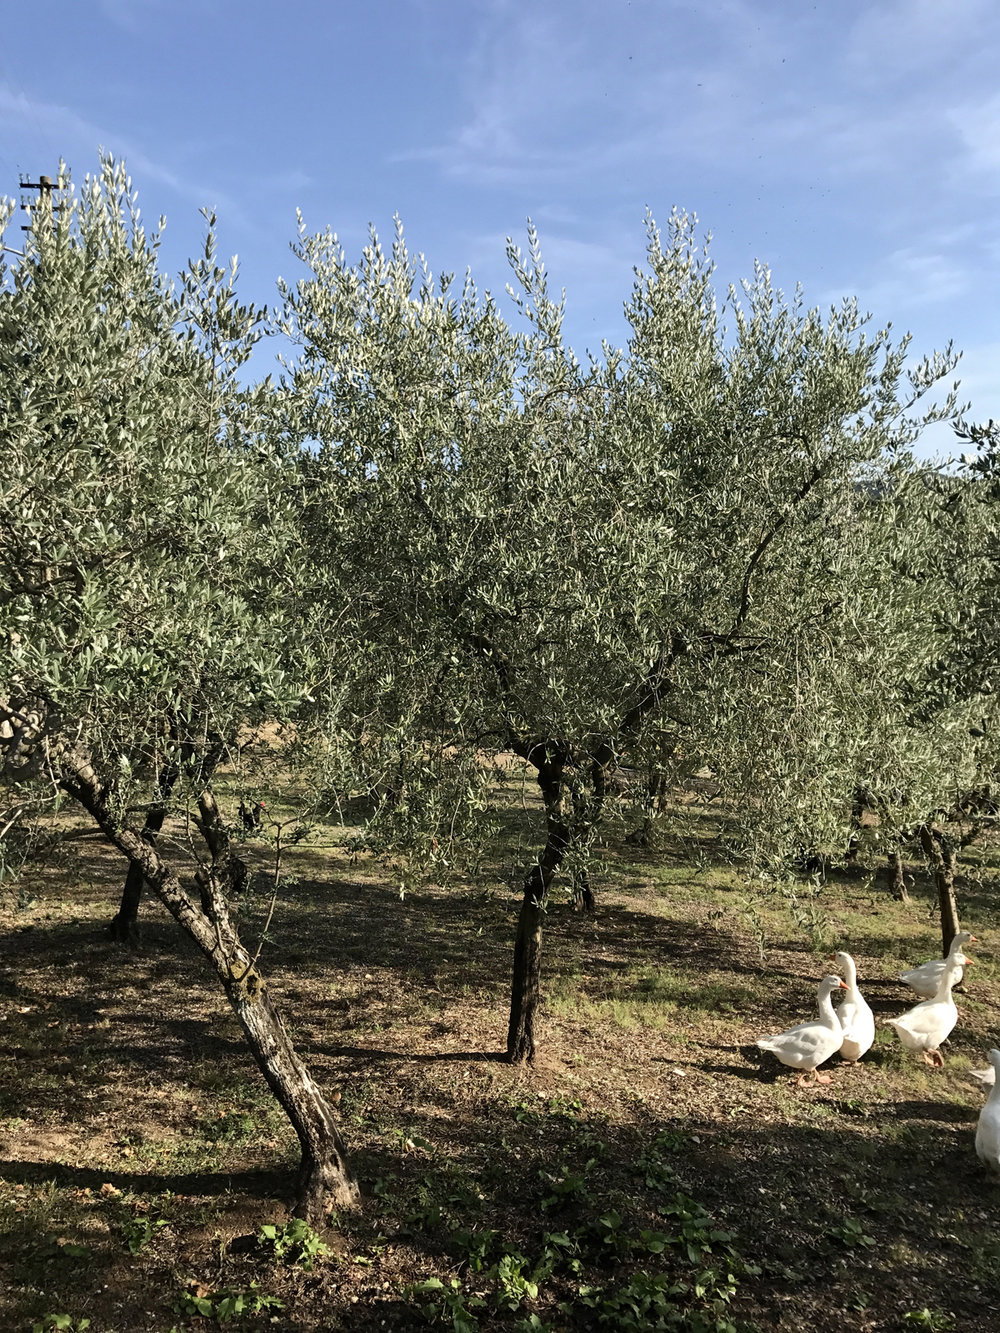 Olive groves on the way to Collestatte  Below: Student work